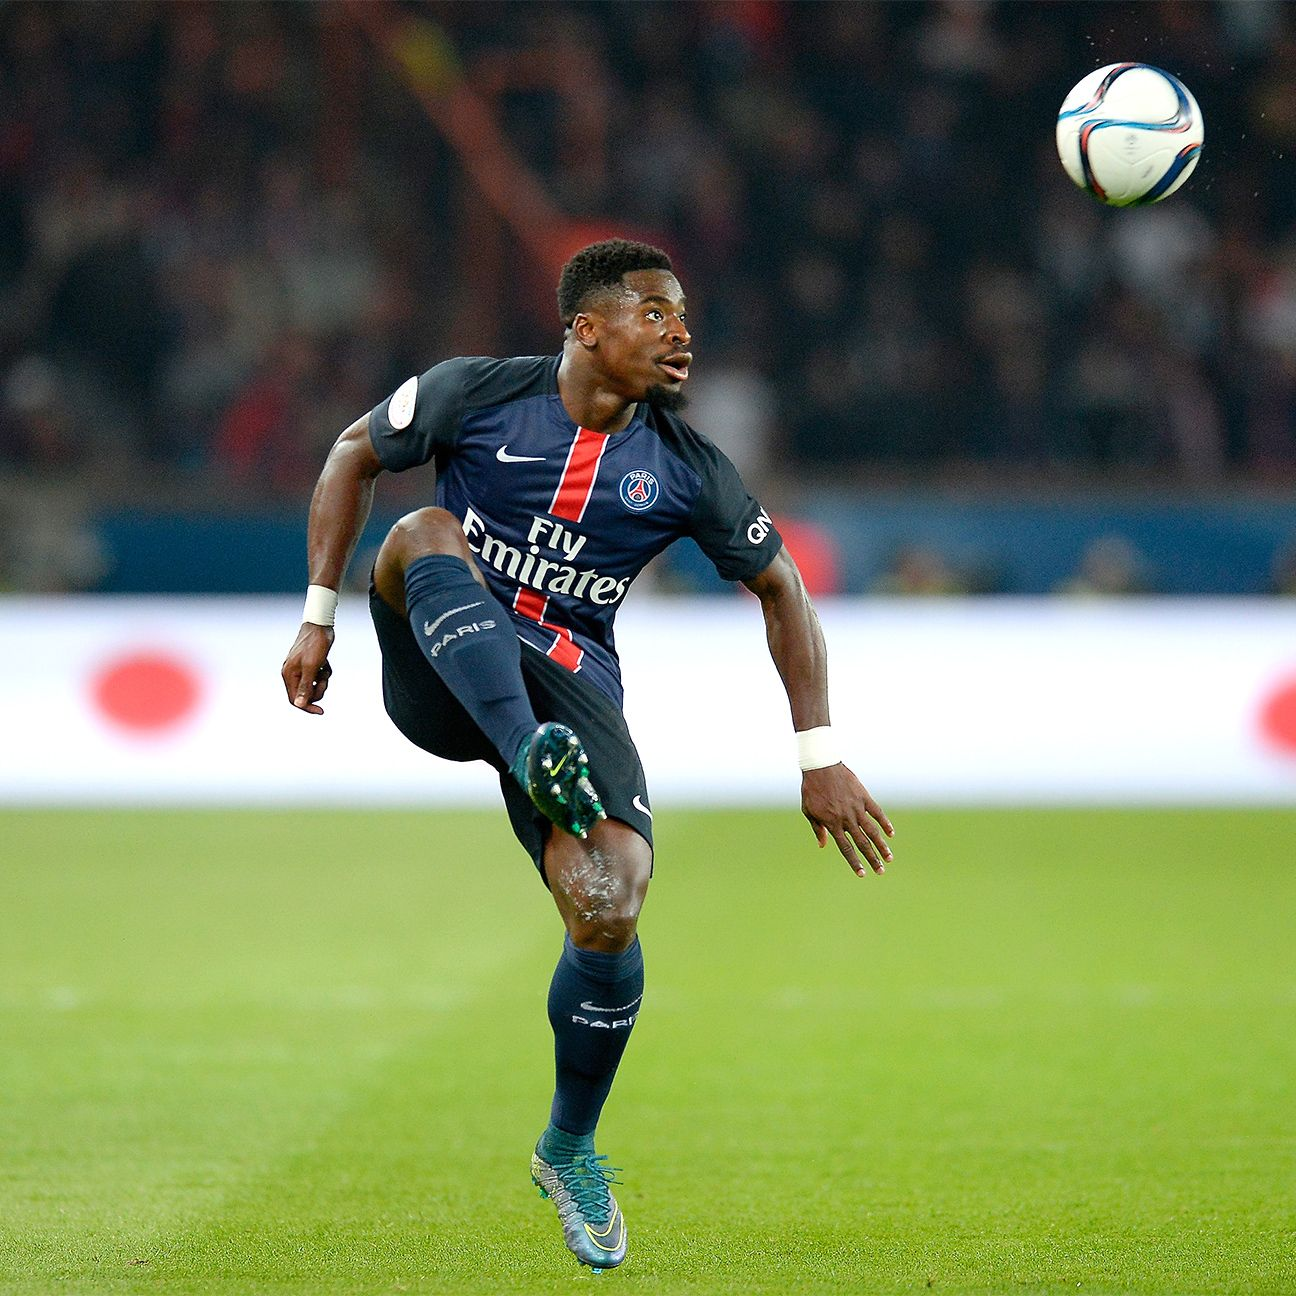 PSG right-back Serge Aurier has three goals in all competitions this season.